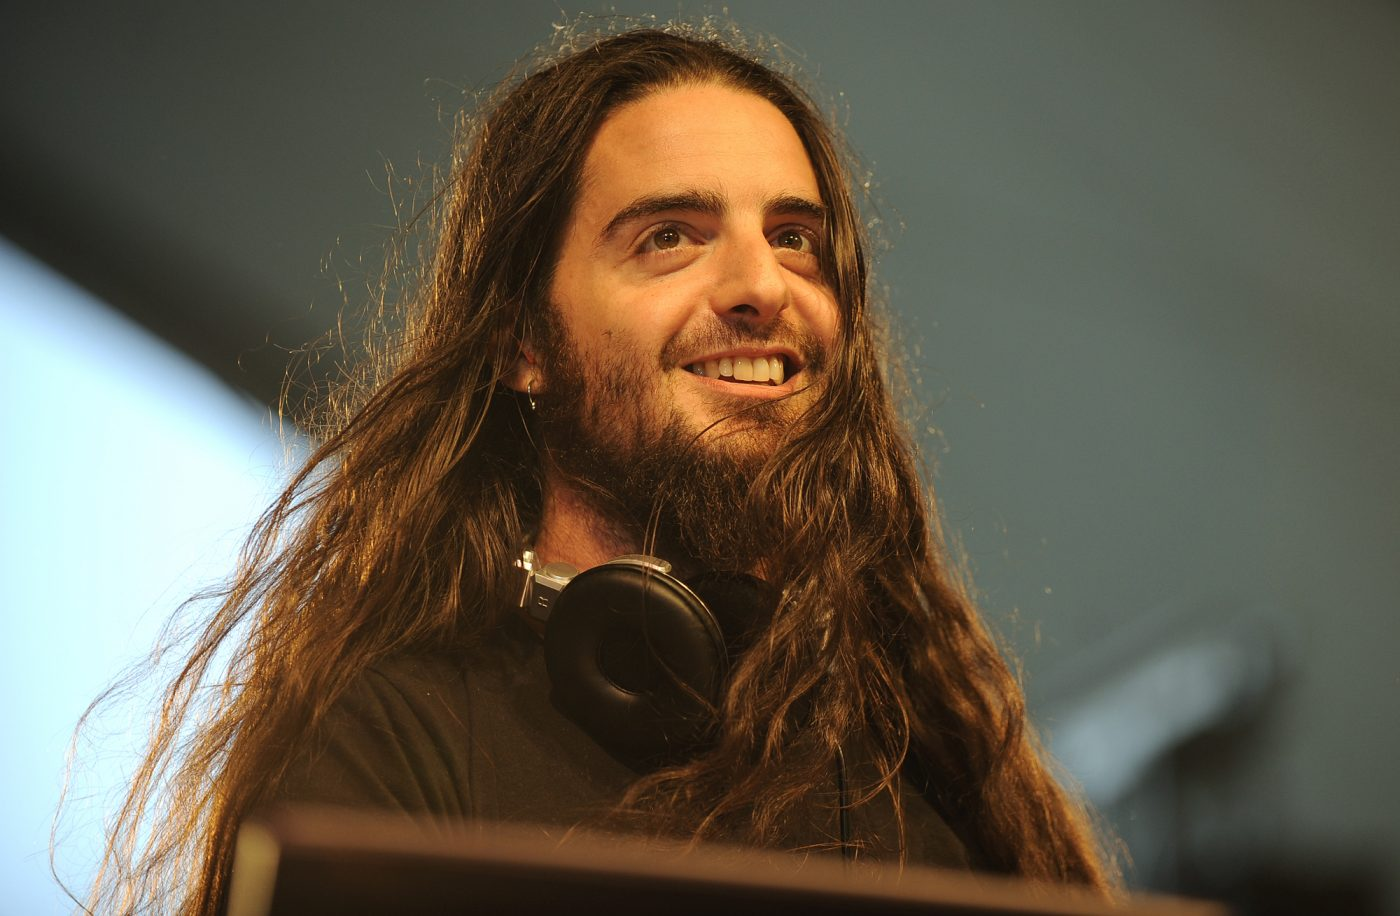 The 42-year old son of father (?) and mother(?) Bassnectar in 2020 photo. Bassnectar earned a million dollar salary - leaving the net worth at million in 2020